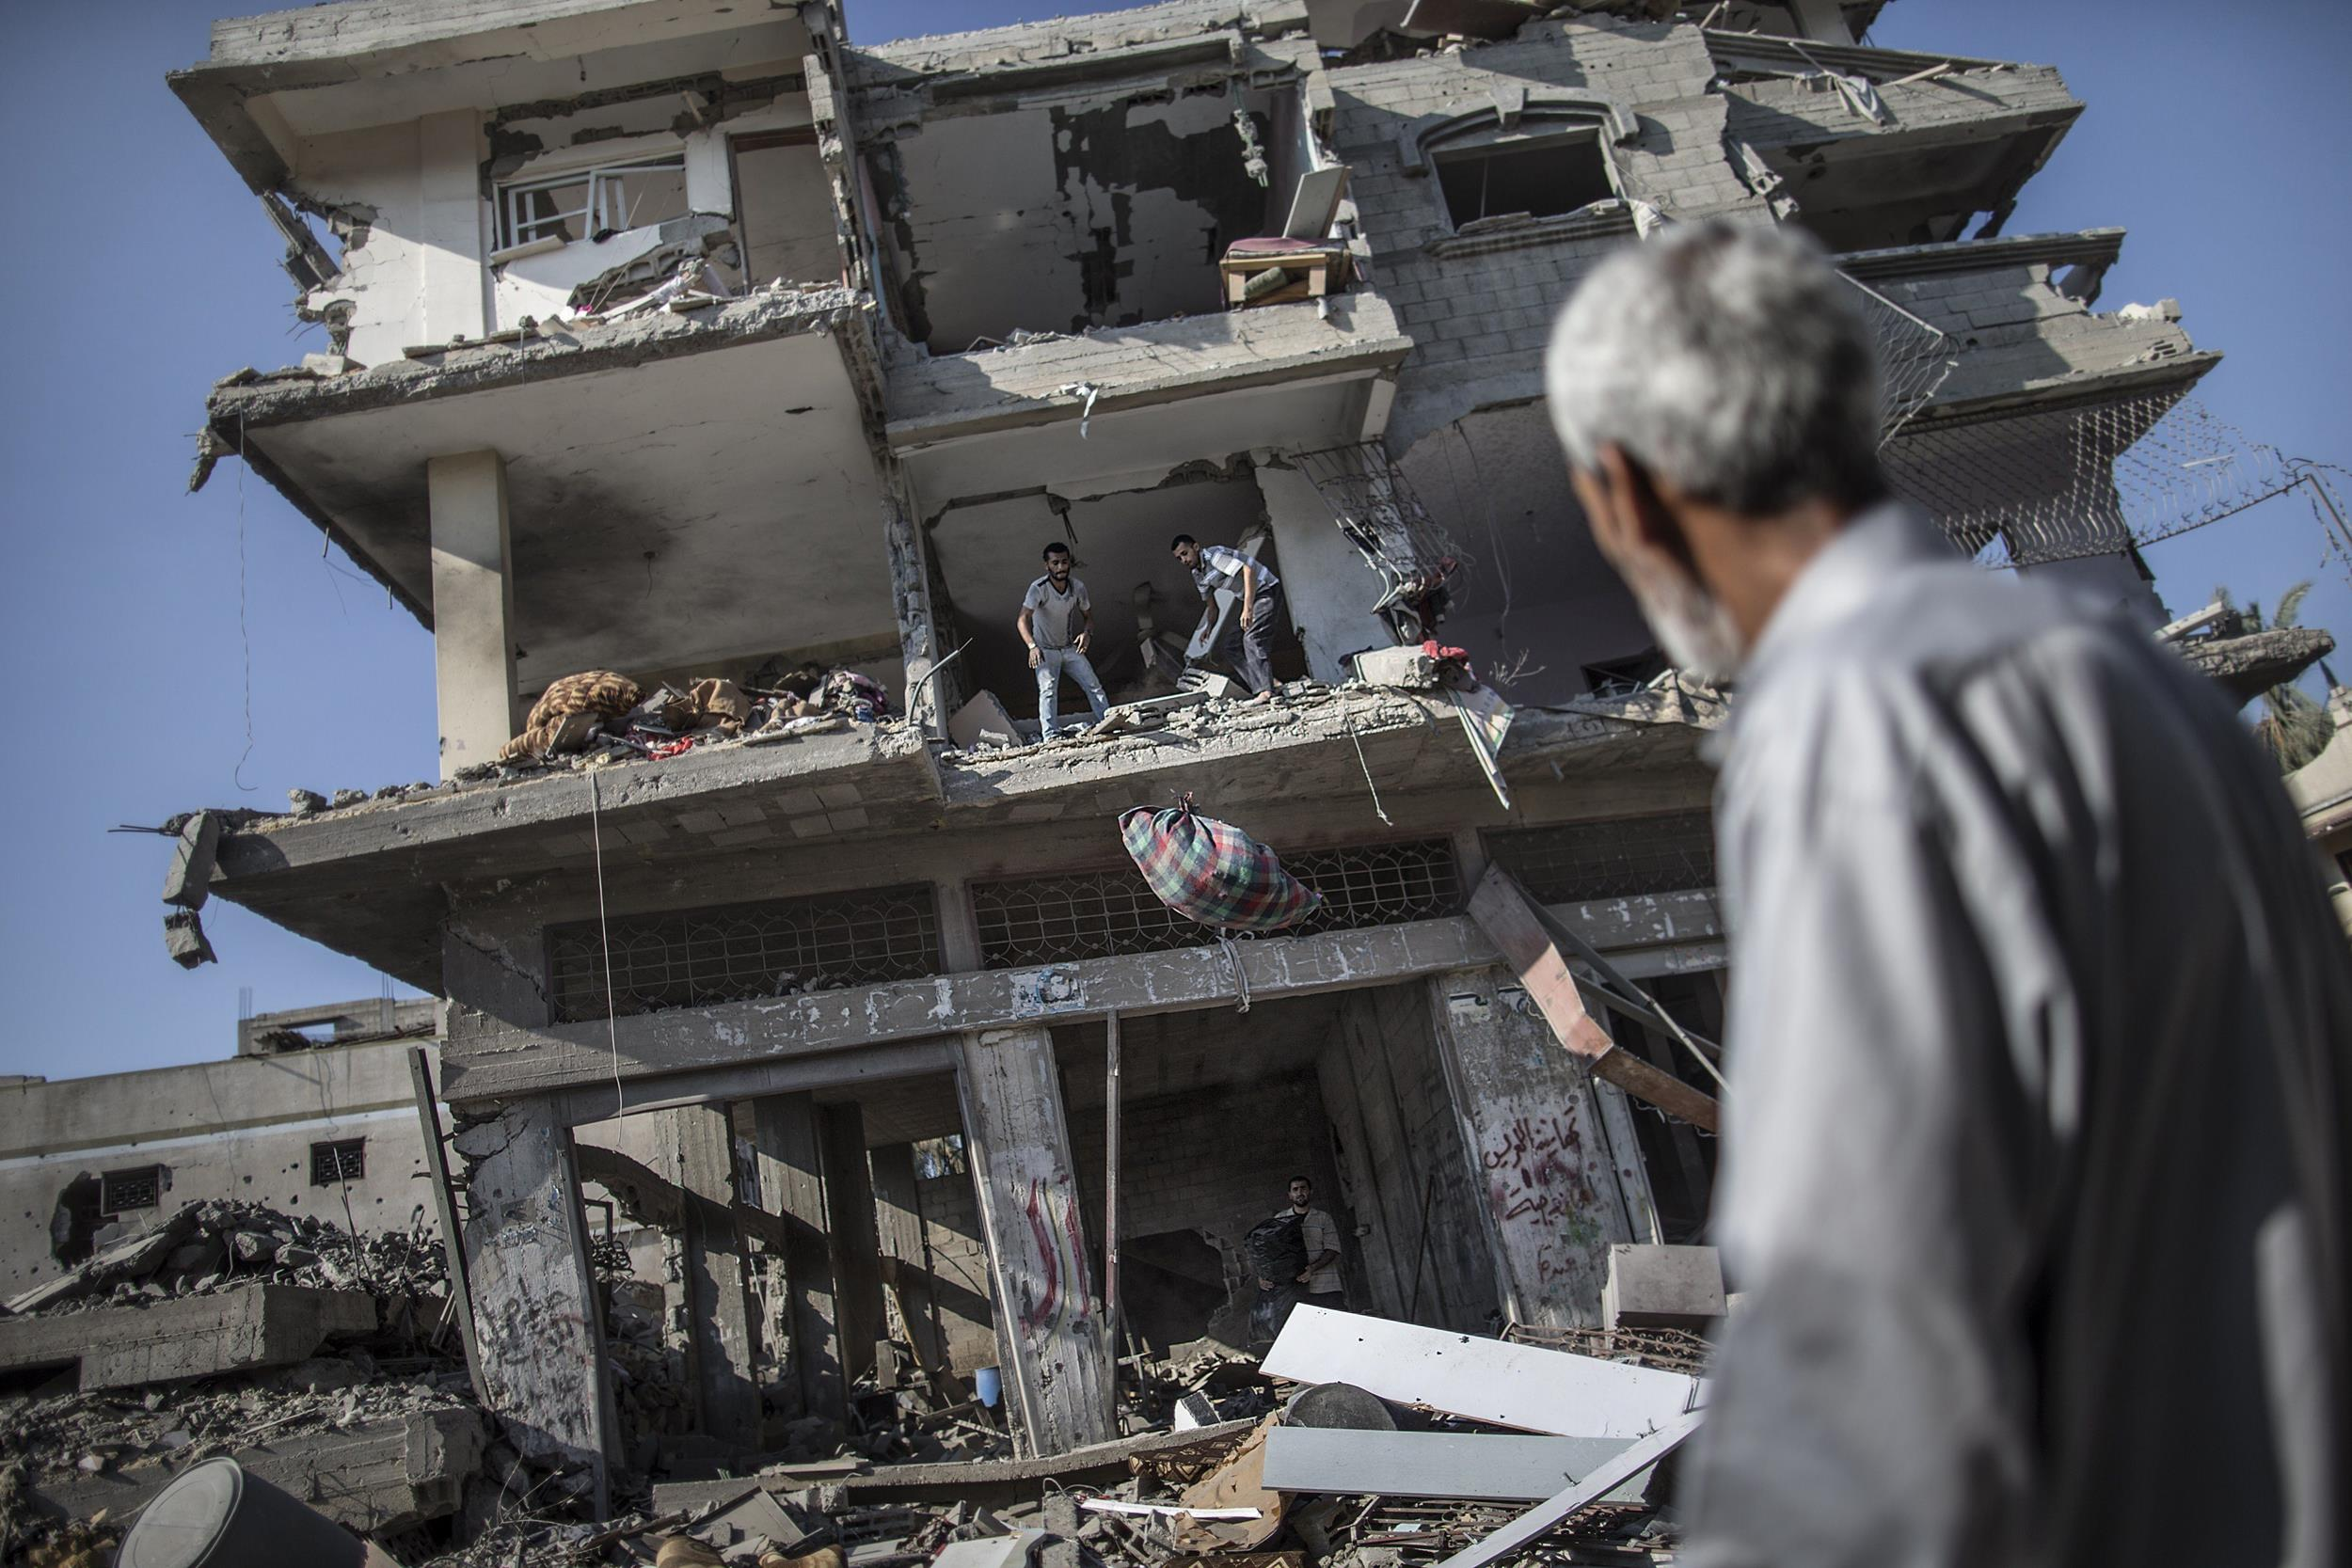 Image: A Palestinian looks at people collecting items and belongings they found in the rubble of a destroyed building